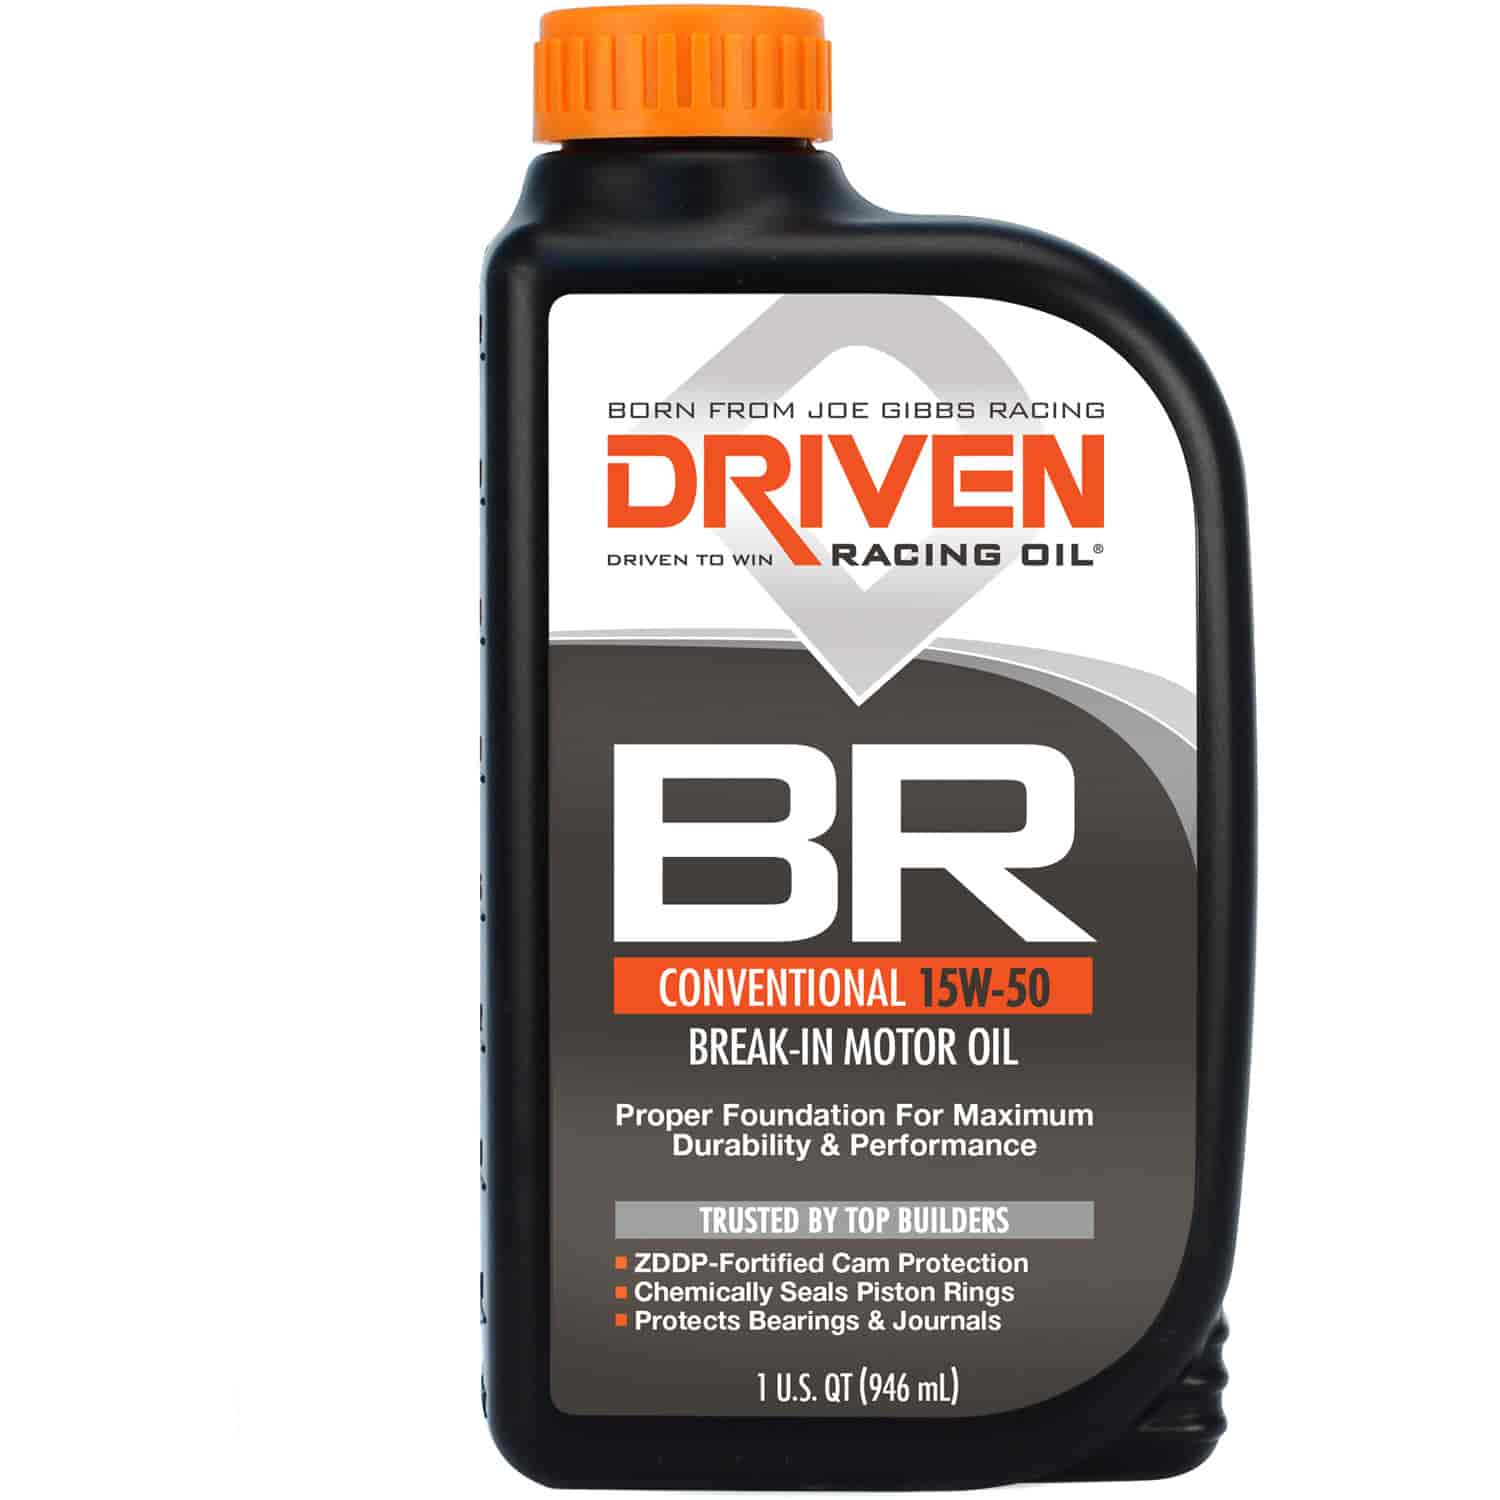 Driven Racing Oil 00106 - Driven Engine Break-In Oils